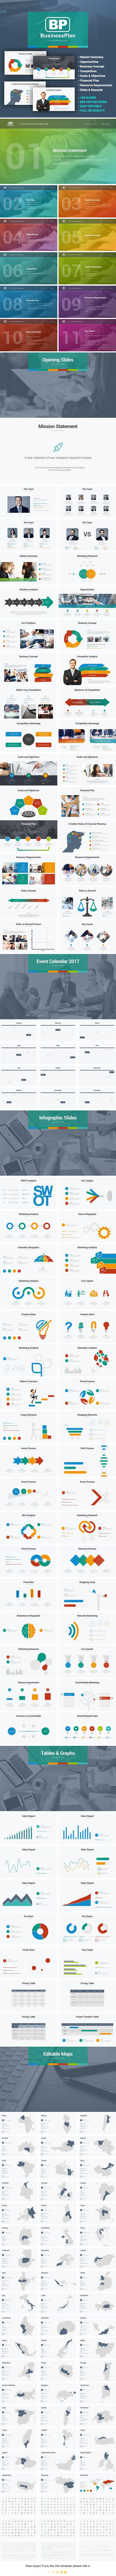 170 best powerpoint designs images on pinterest powerpoint designs